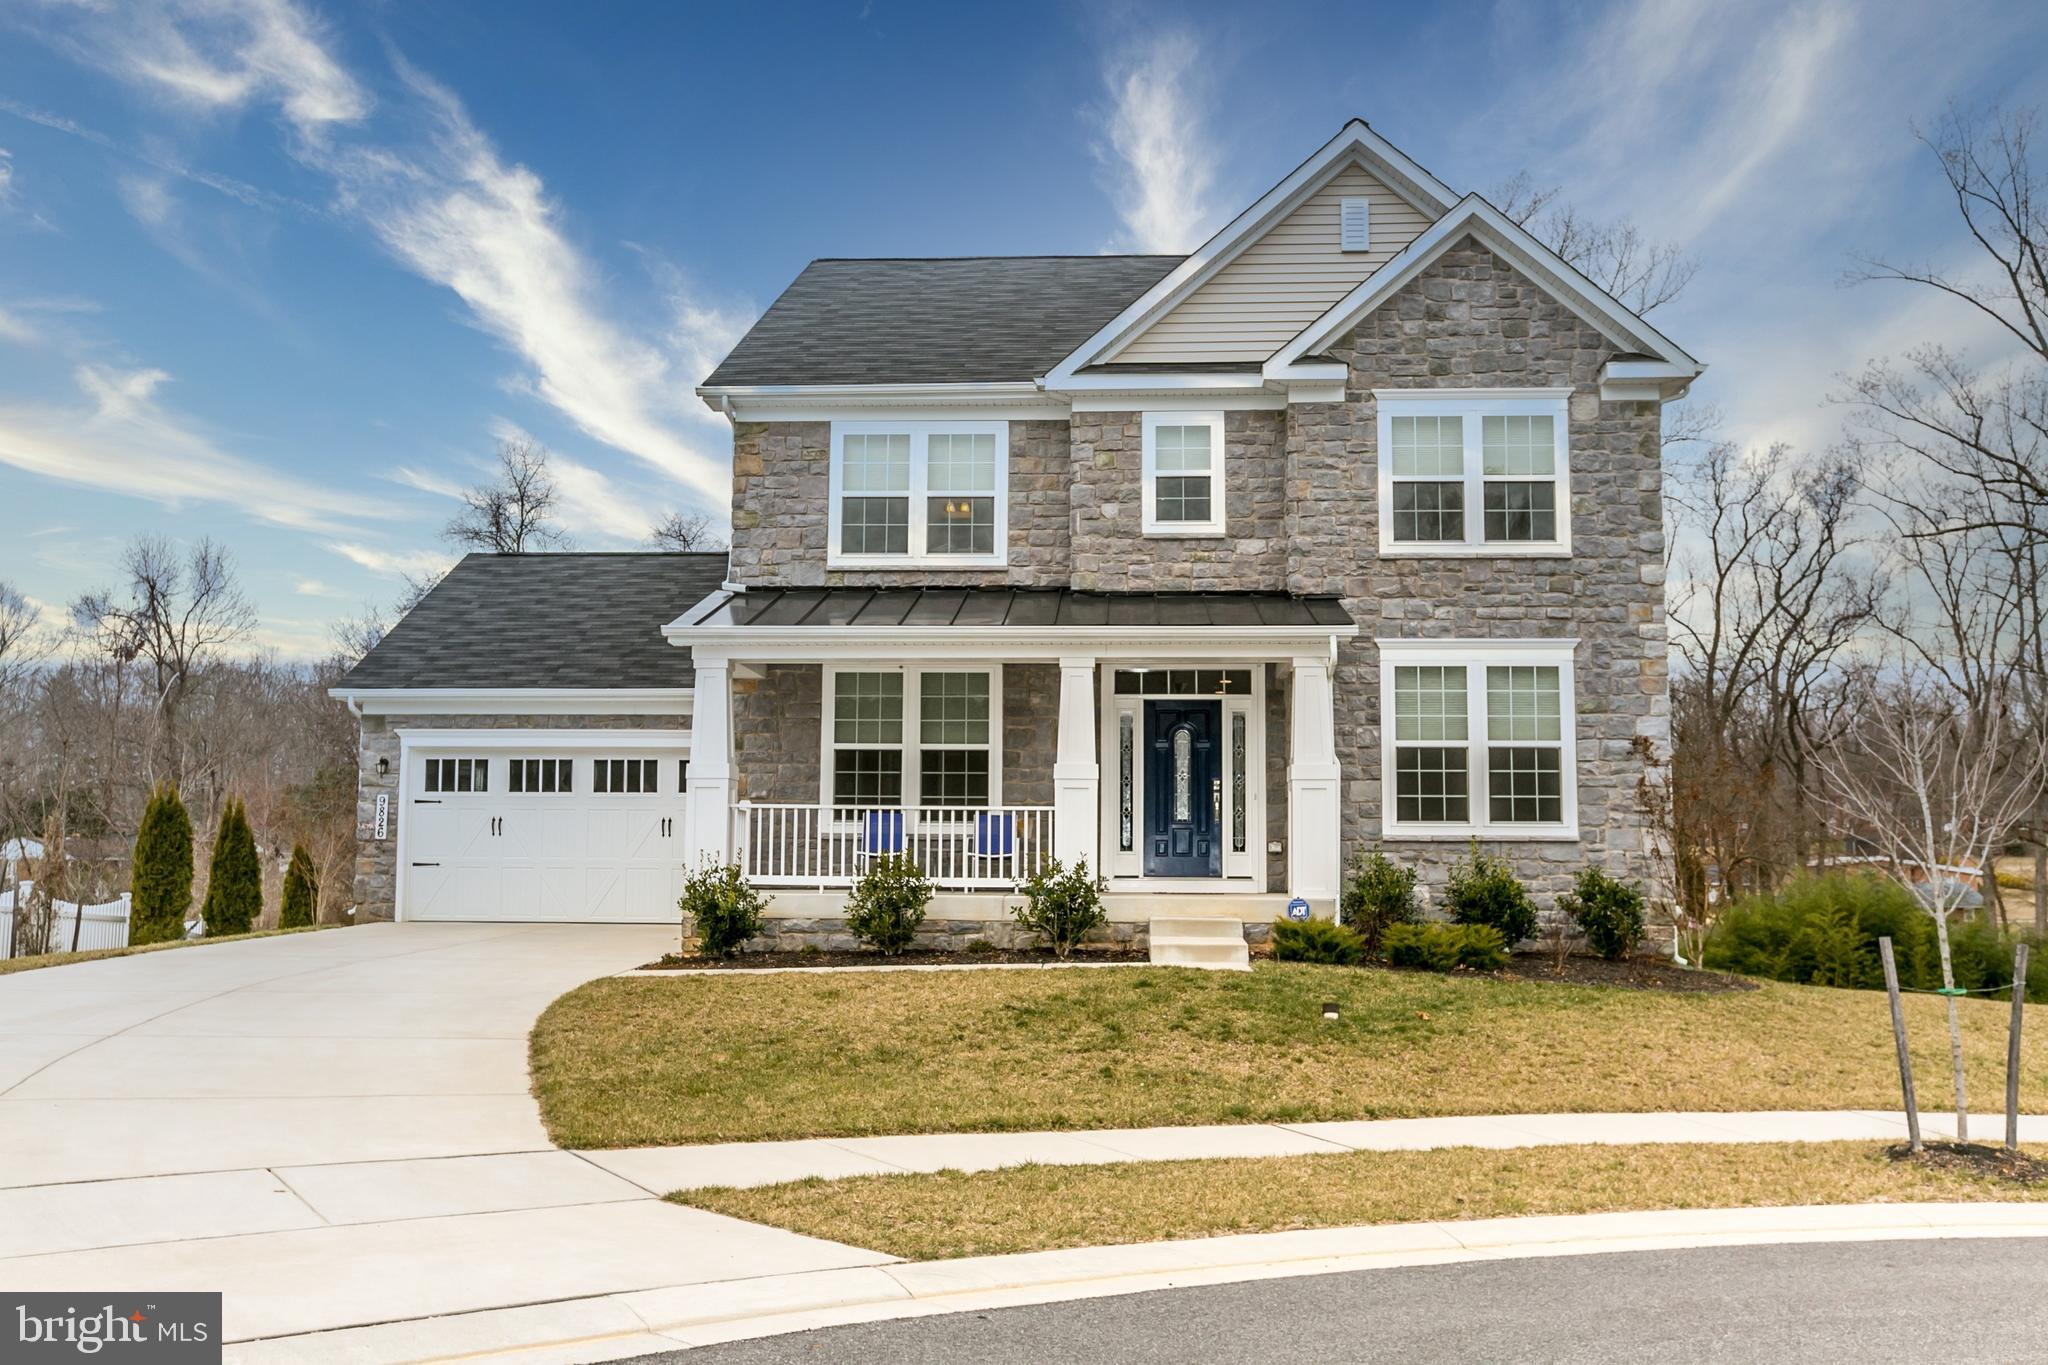 9826 FORGE VALLEY COURT, PERRY HALL, MD 21128